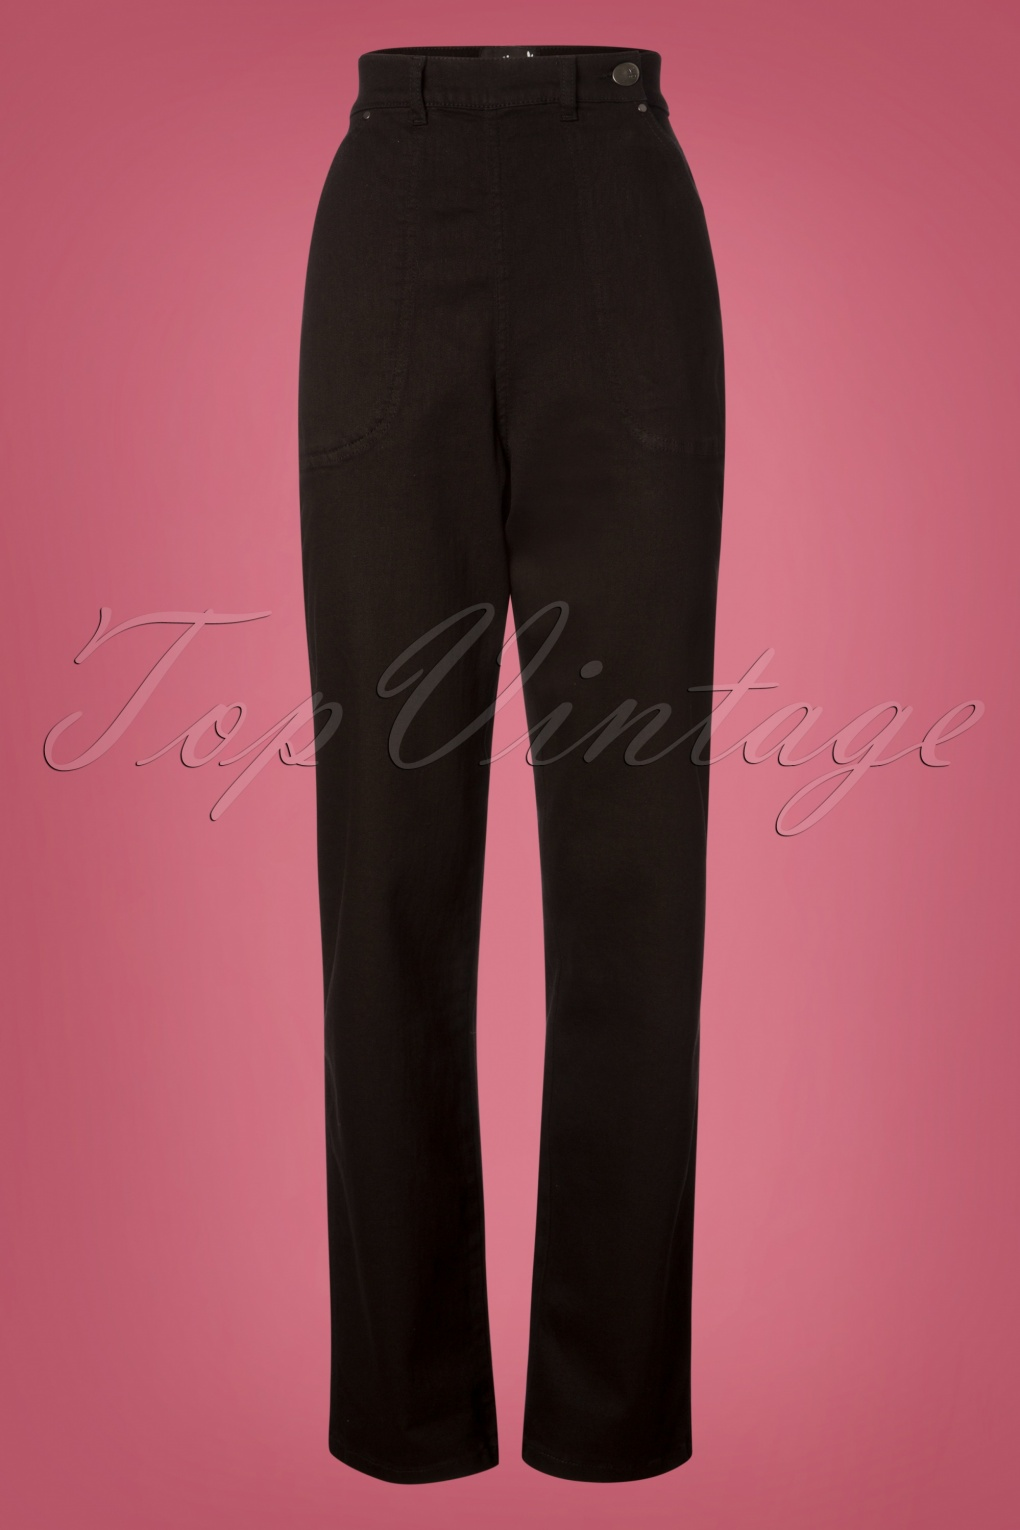 1950s Pants History for Women 50s Weston Jeans in Black £39.23 AT vintagedancer.com